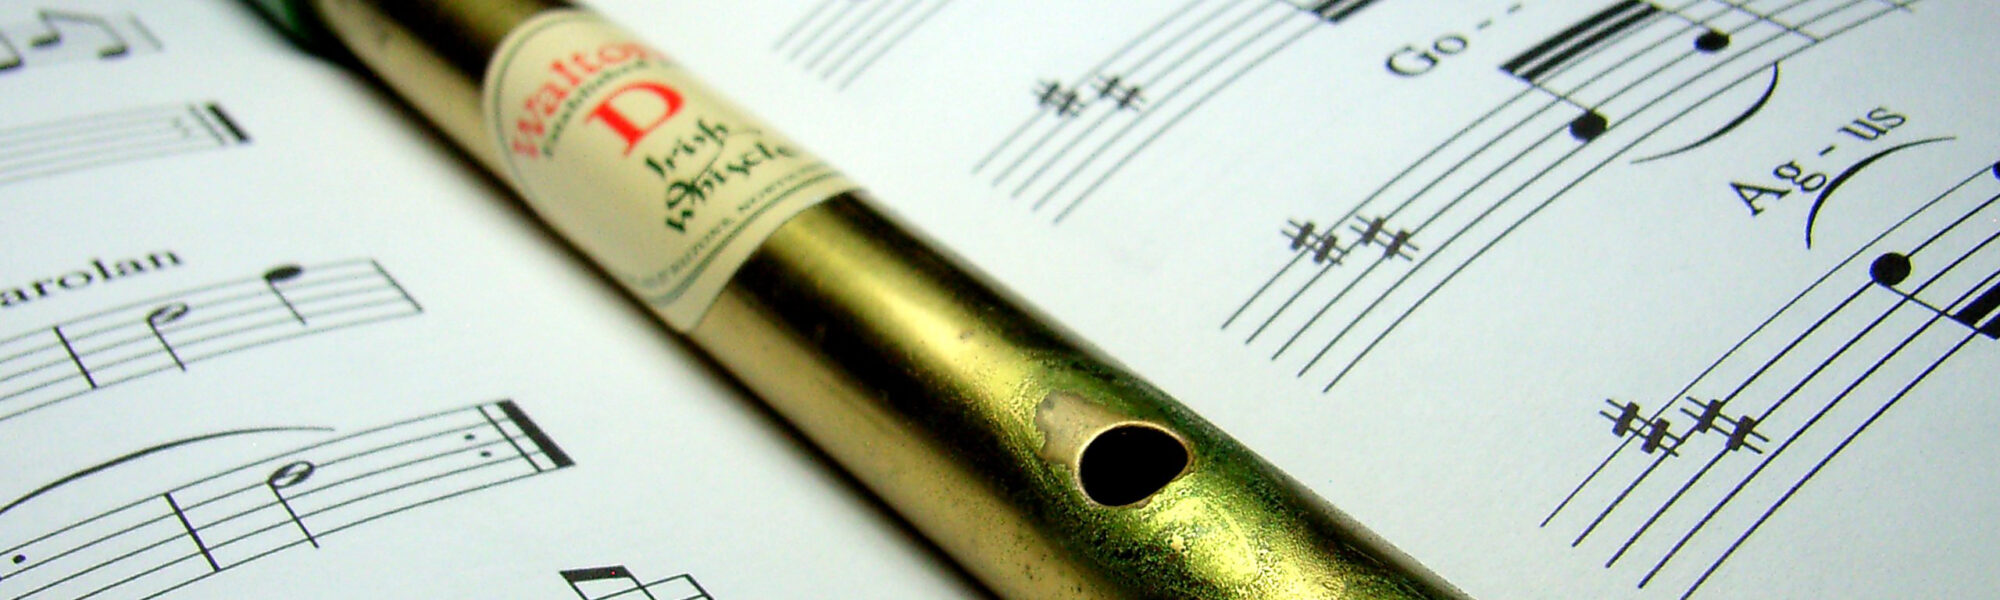 Un Tin Whistle - chidorian - cc